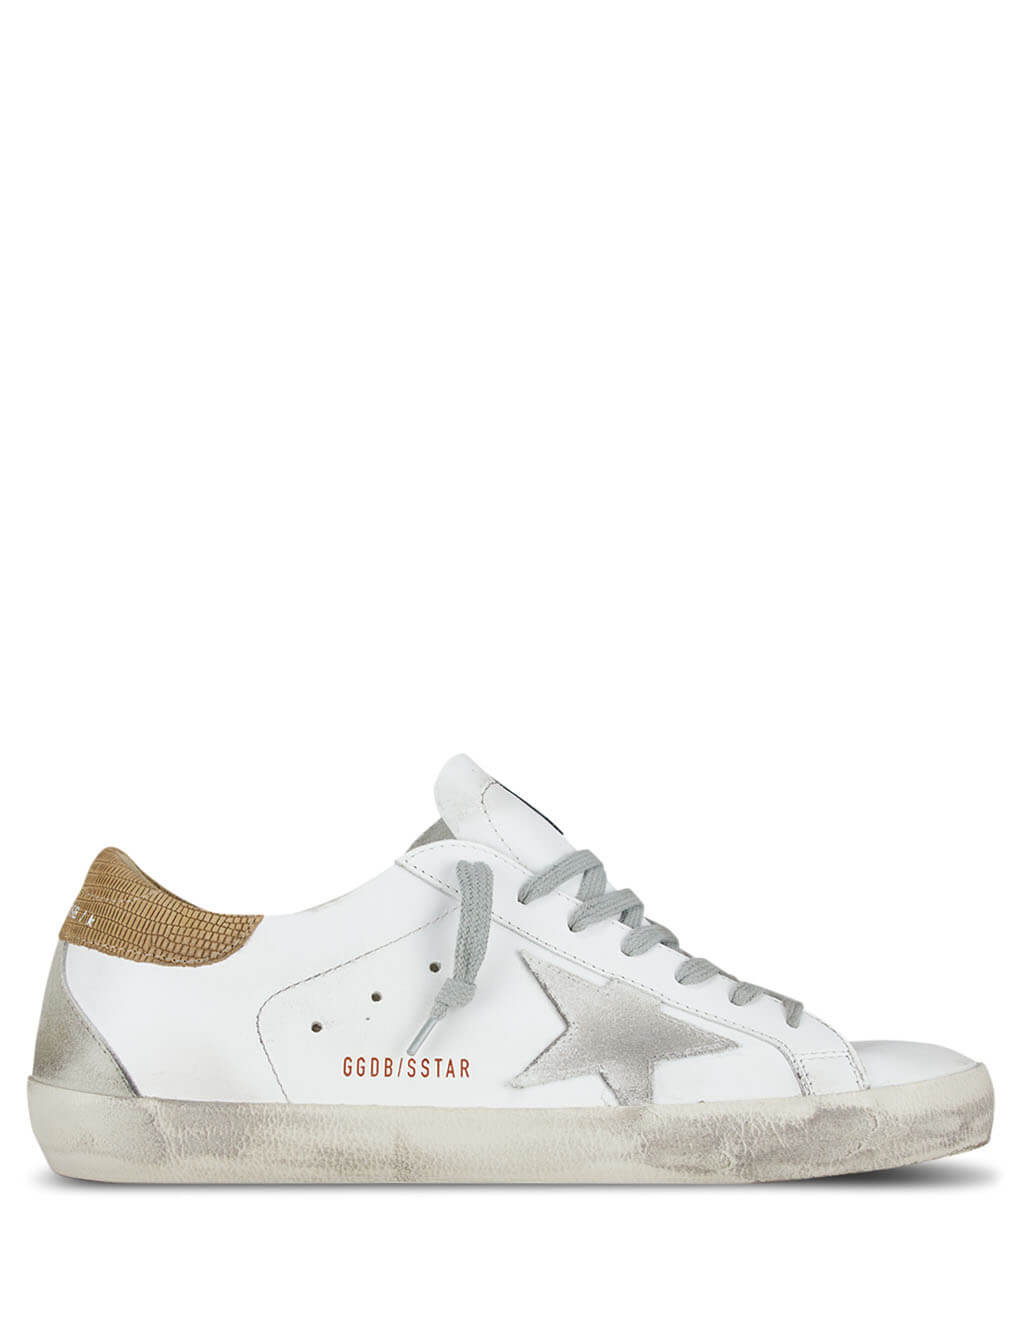 Golden Goose Deluxe Brand Men's Giulio Fashion White Superstar Sneakers G36MS590.S78